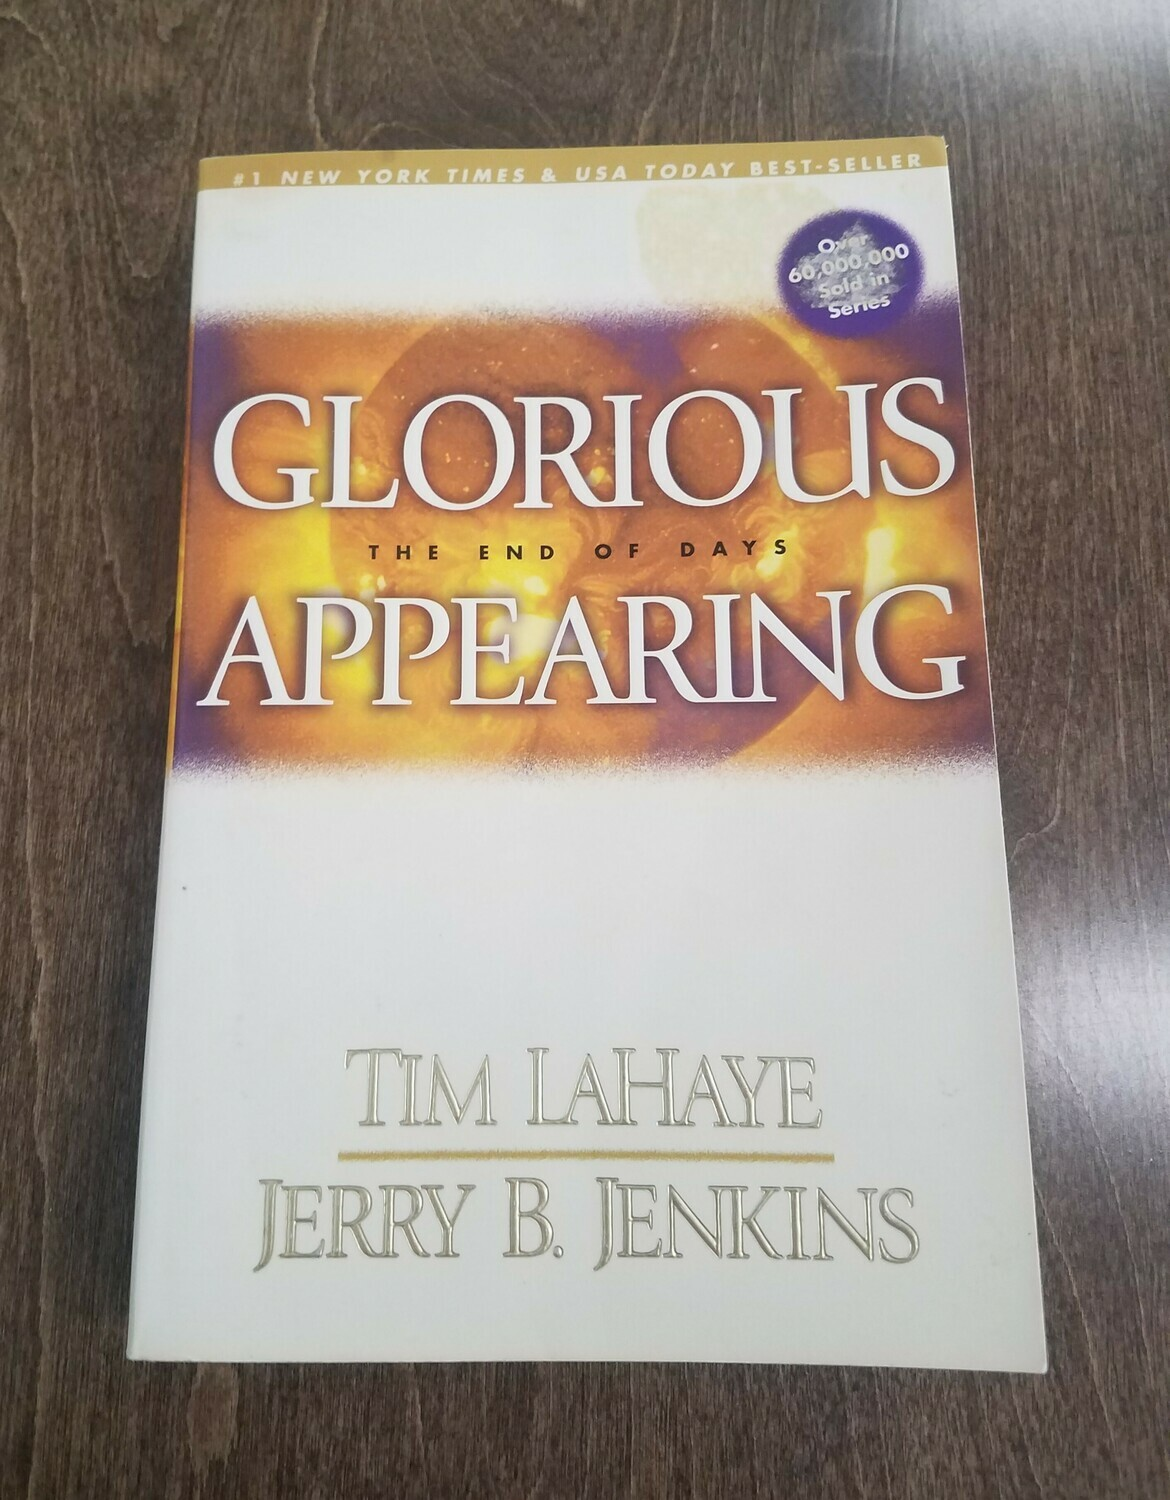 Glorious Appearing: The End of Days by Tim LaHaye and Jerry B. Jenkins - Paperback